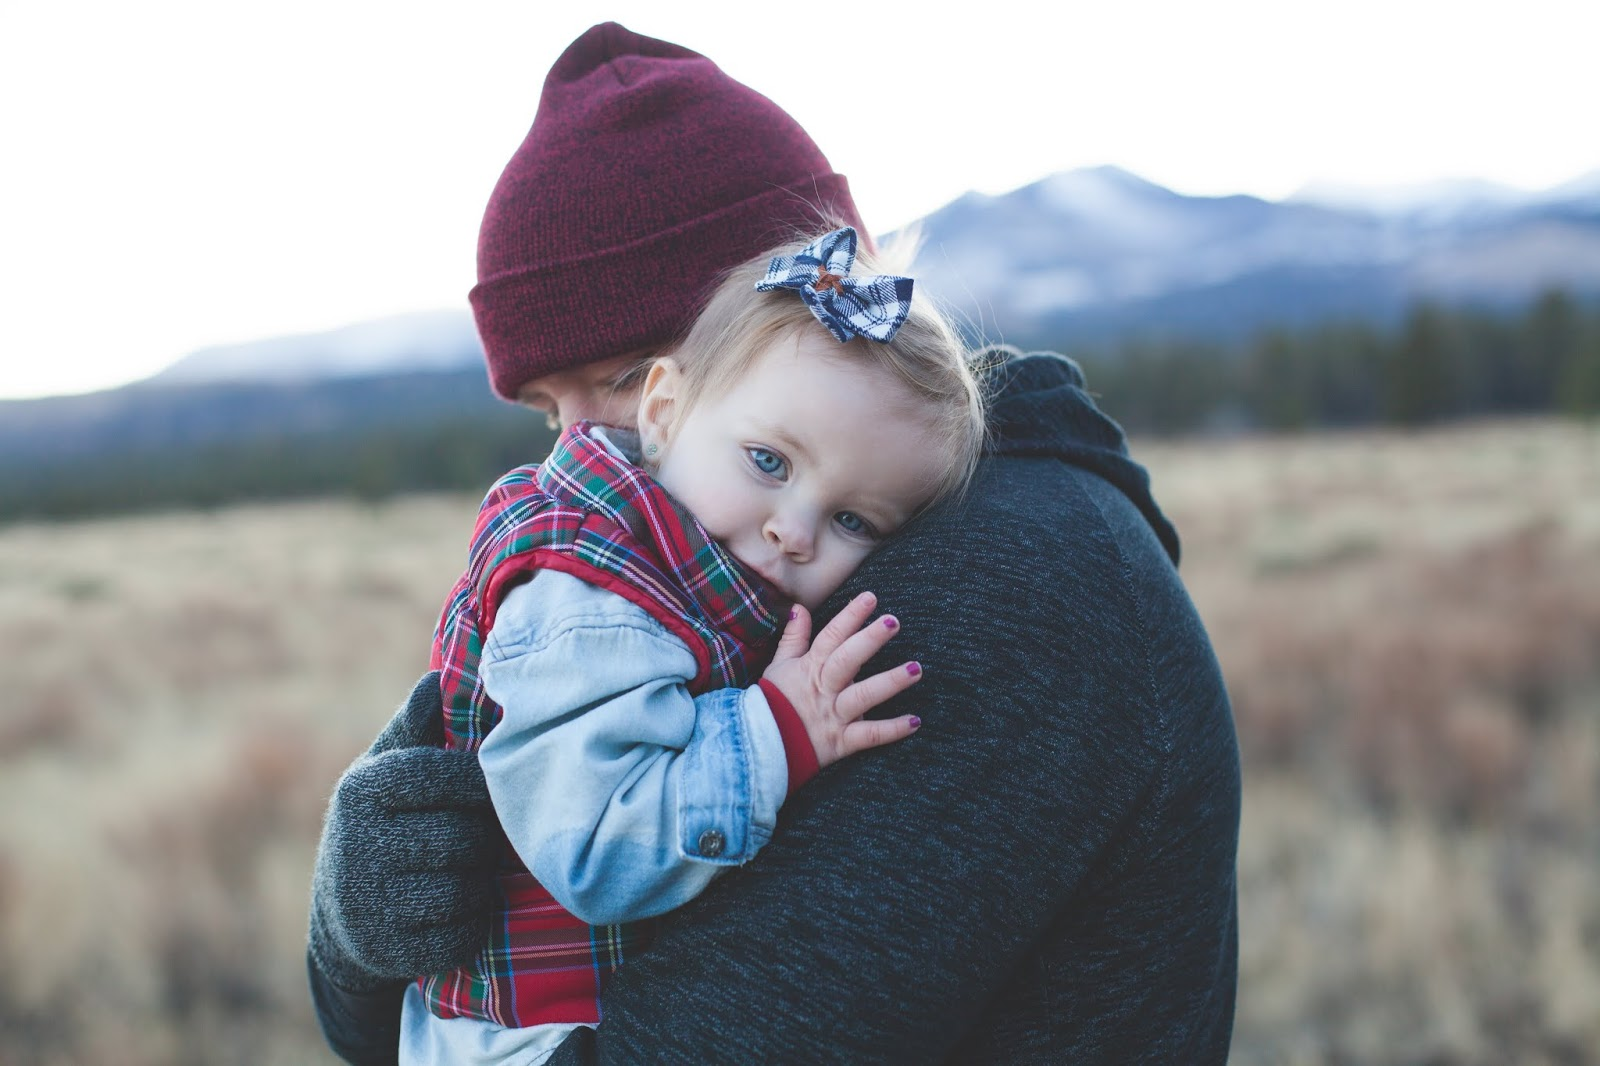 READ THIS: The Personal Pledge Of A Father